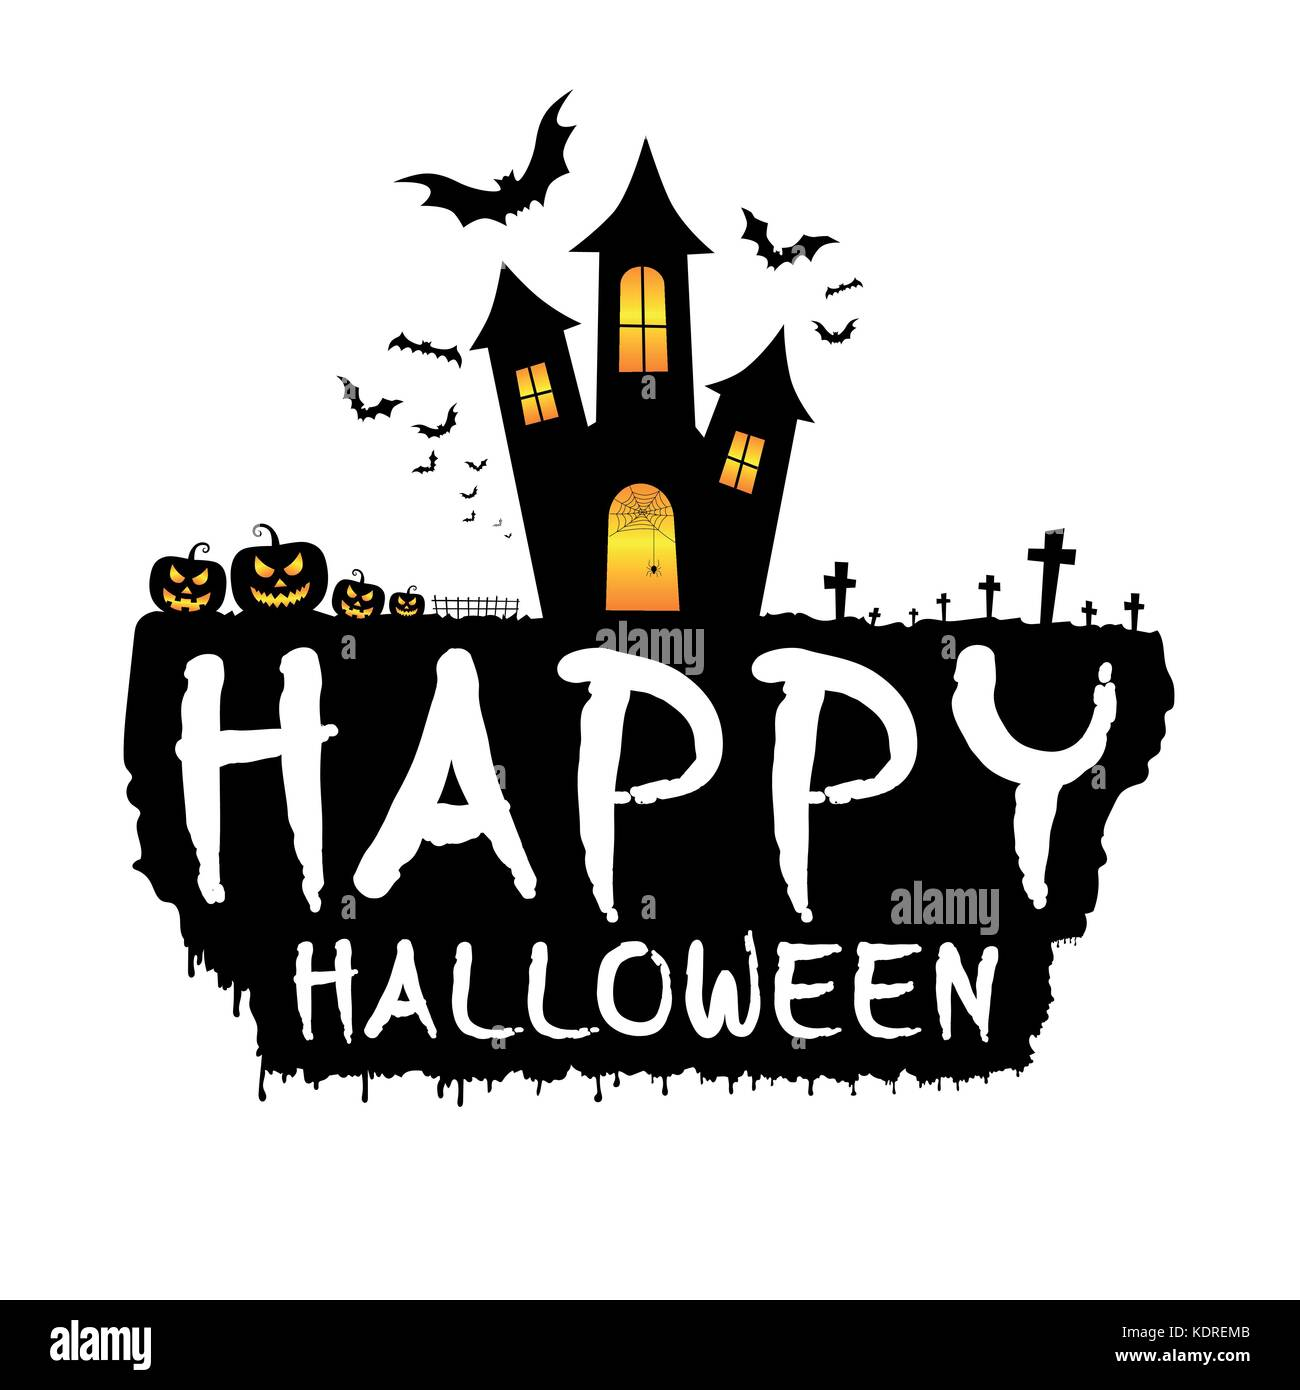 Happy halloween with dark castle, scary pumpkins, bats and graveyard ...